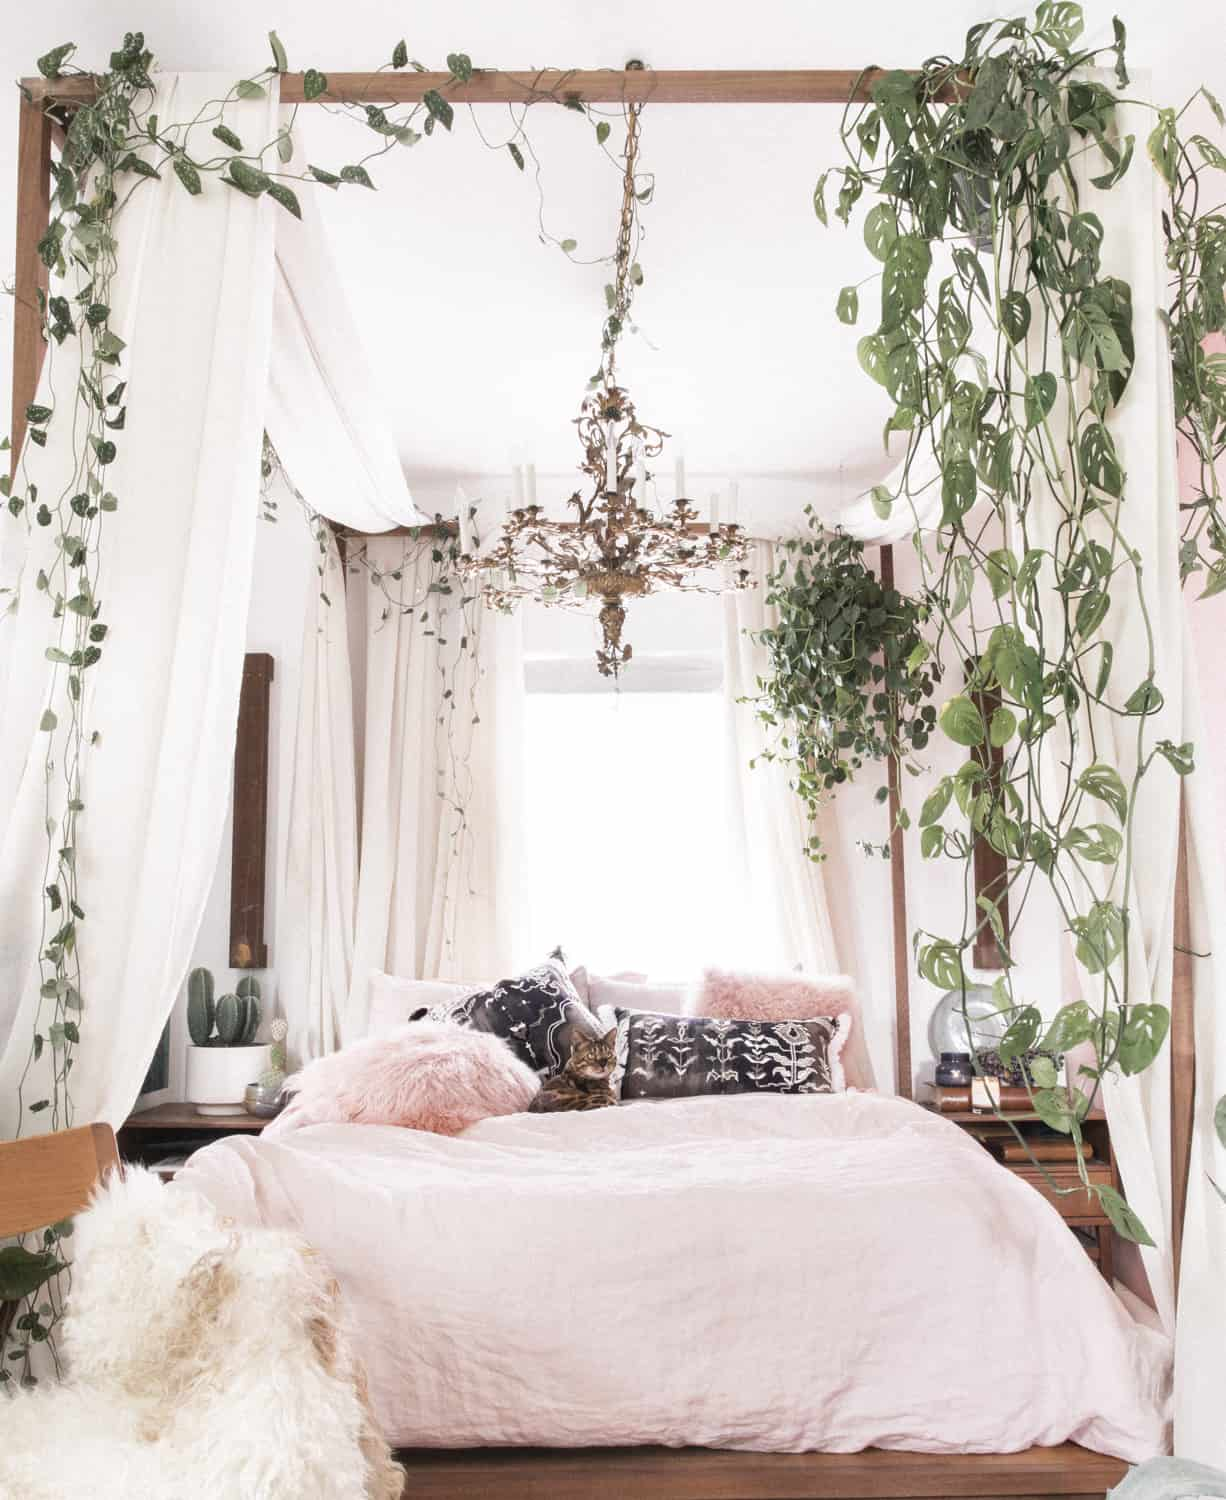 bohemian decor with plants 11 Spaces With A Bohemian Twist